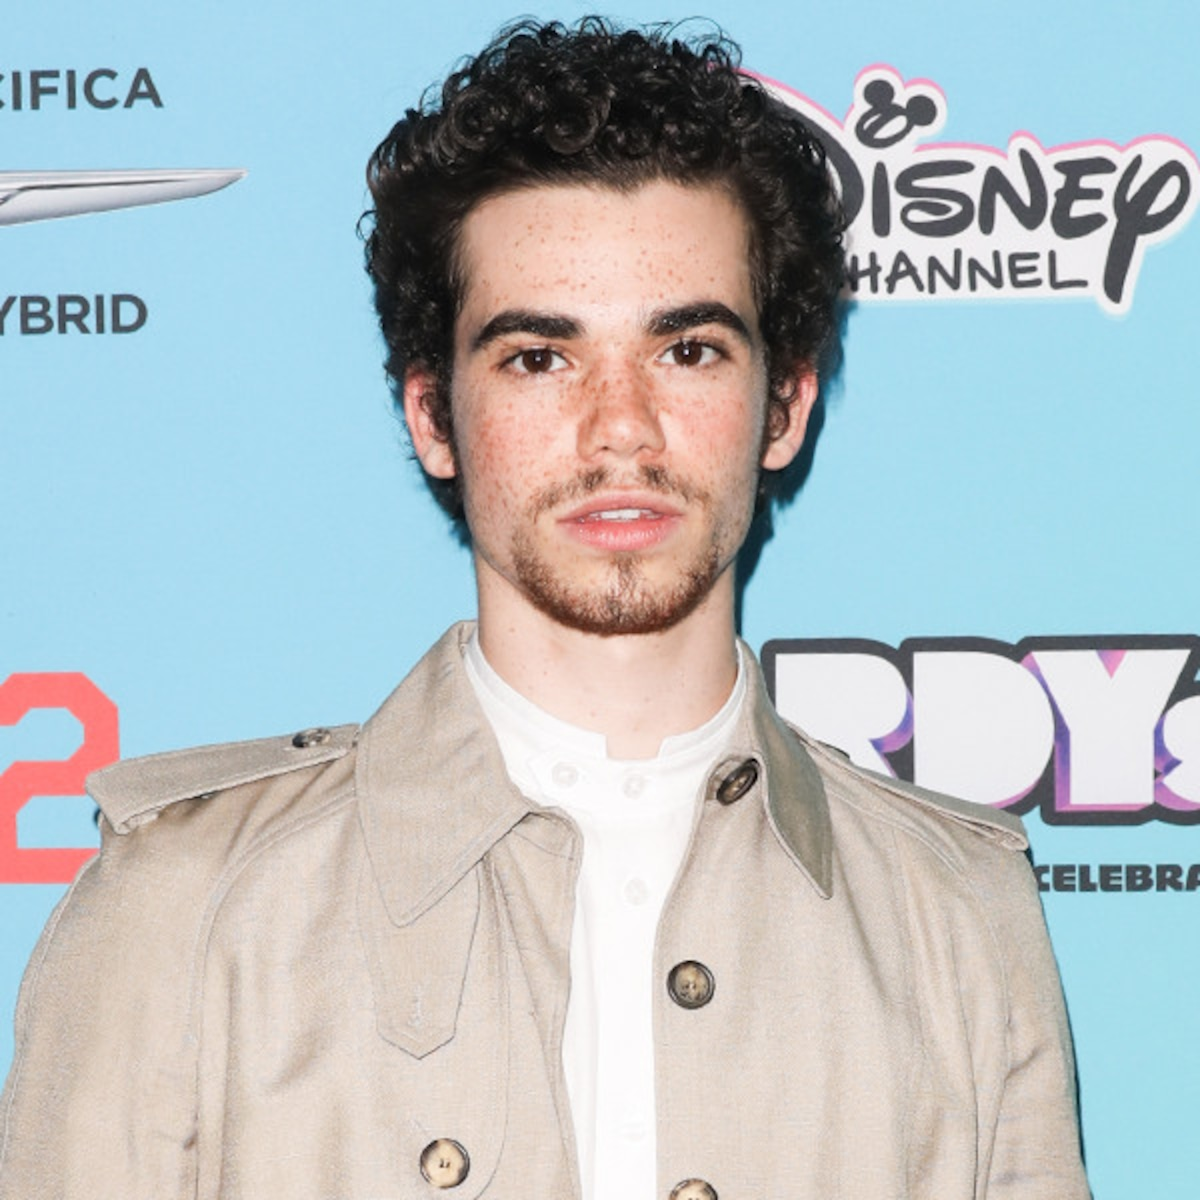 Cameron Boyce S Sister Breaks Silence On Disney Actor S Death E Online